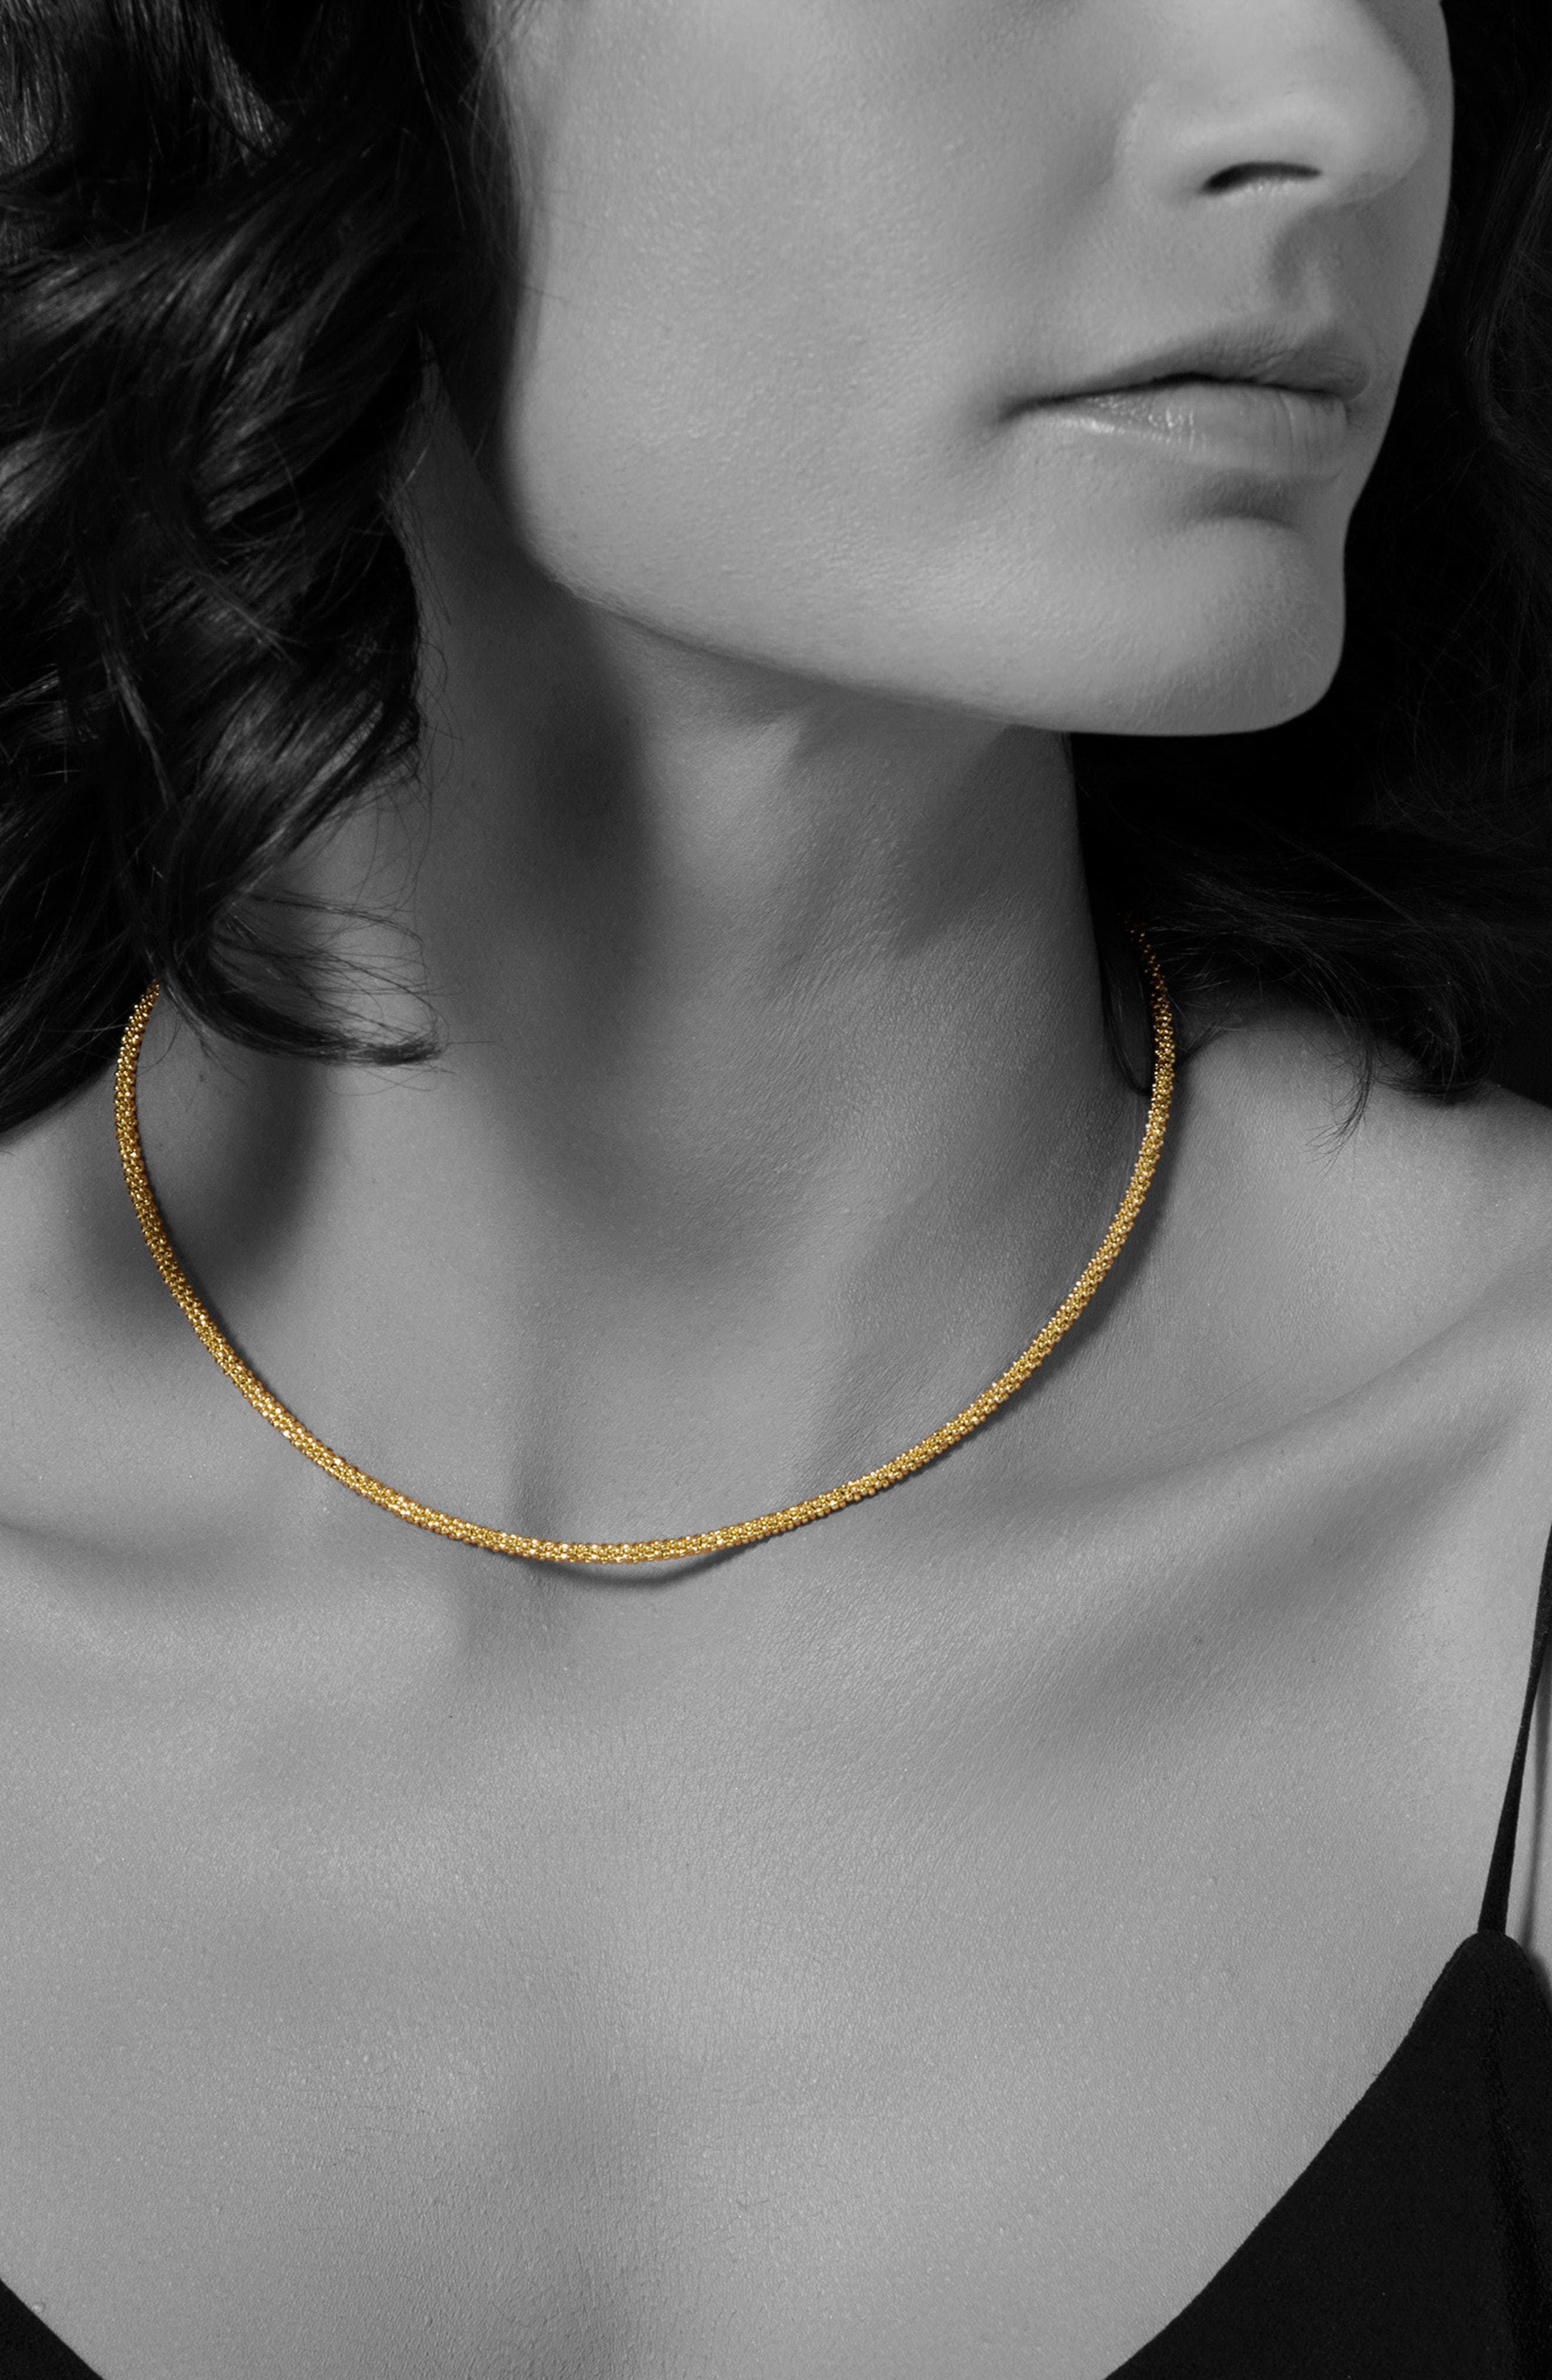 Caviar Gold Rope Necklace,                             Alternate thumbnail 2, color,                             Gold